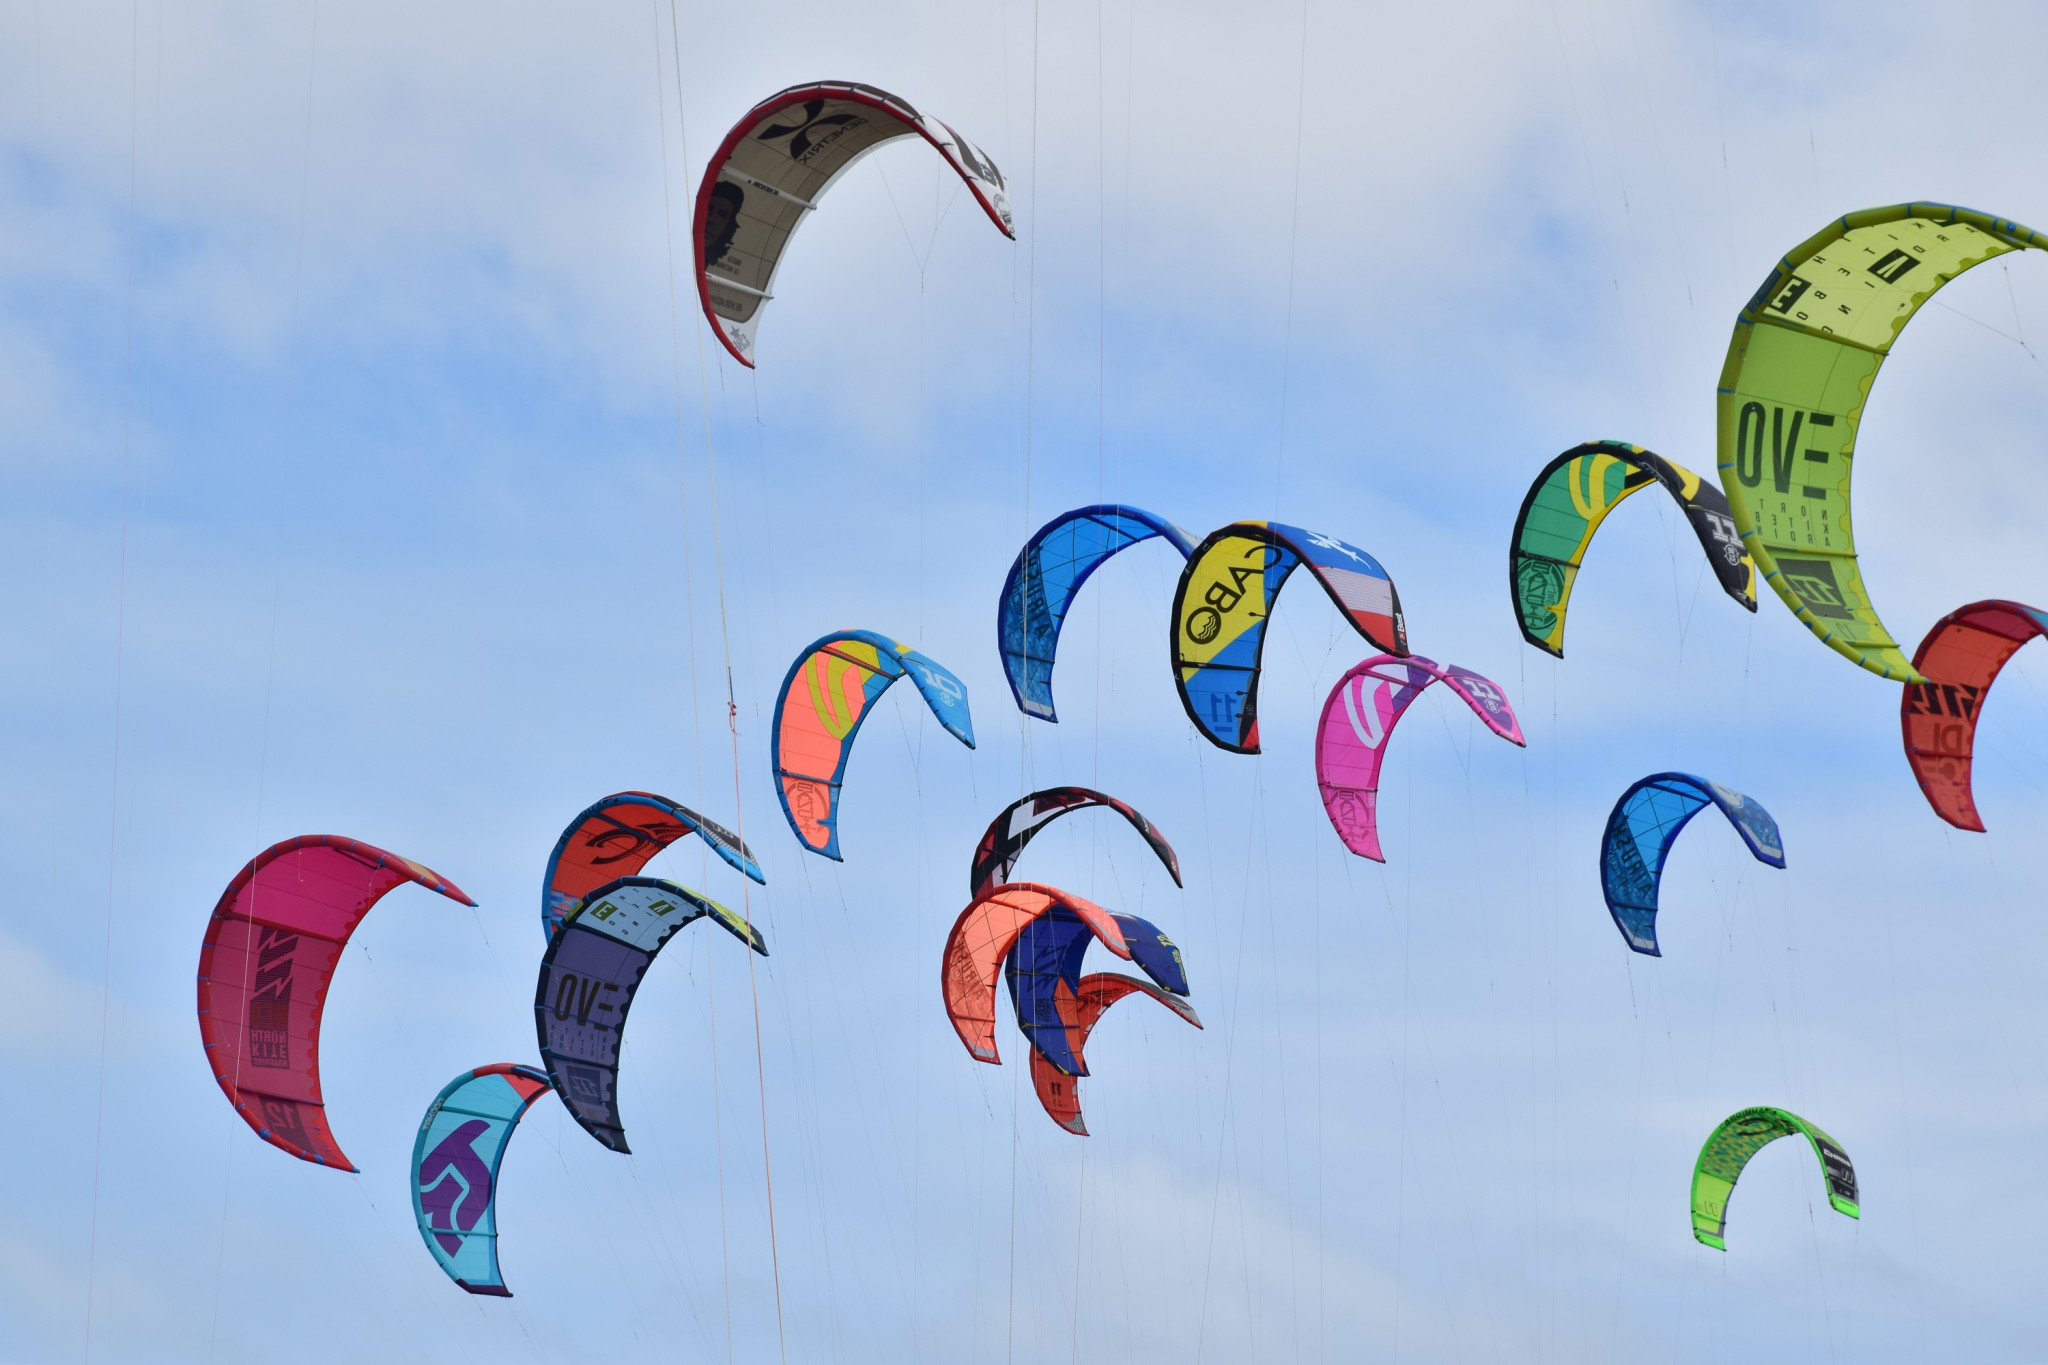 Kitesports are expected to feature at the Paris 2024 Olympic Games ©IKFO